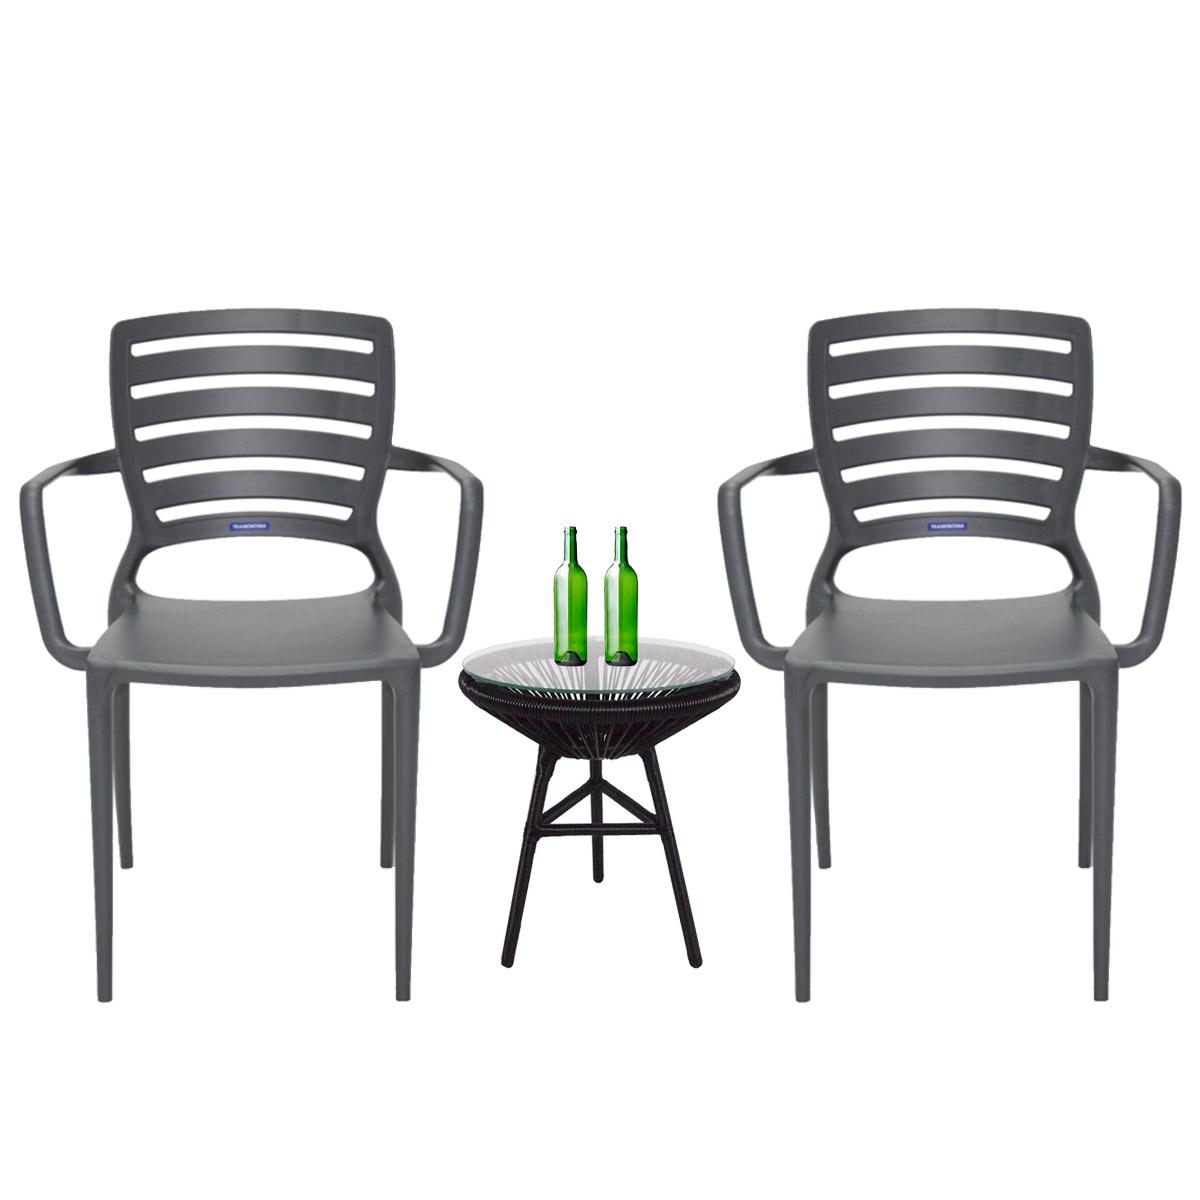 Sofia Armchair Patio Set | Outdoor Chair | Patio Furniture | Balcony and Garden | Plastic Outdoor Chair